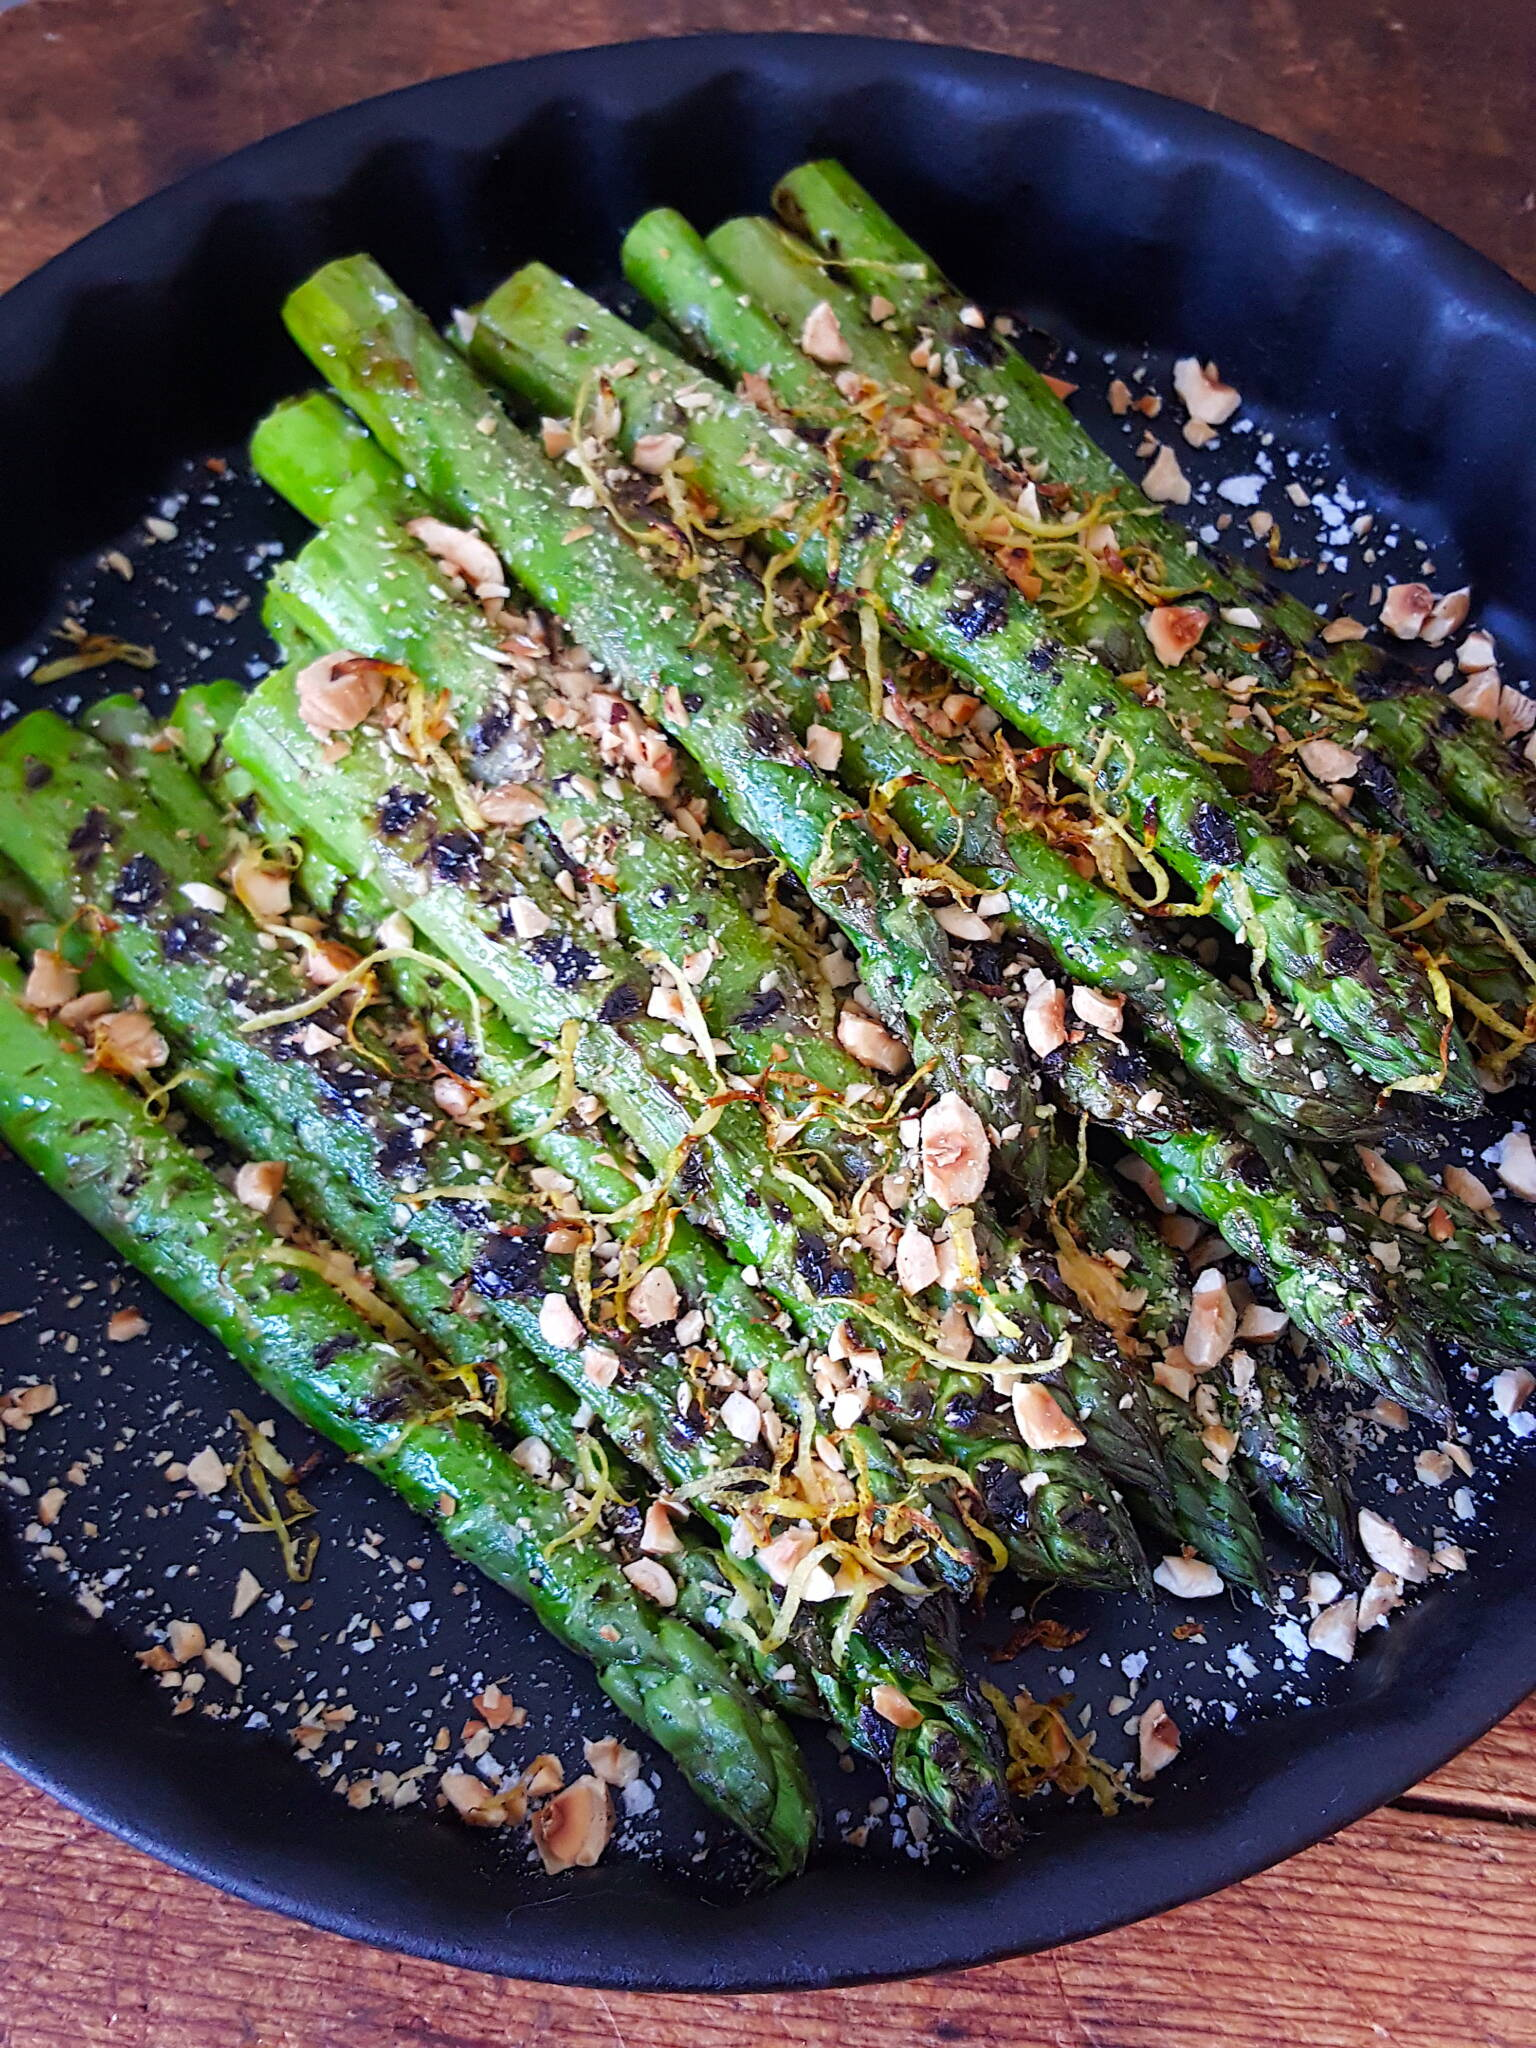 Get grilling! Grilled Asparagus with Toasted Hazelnuts